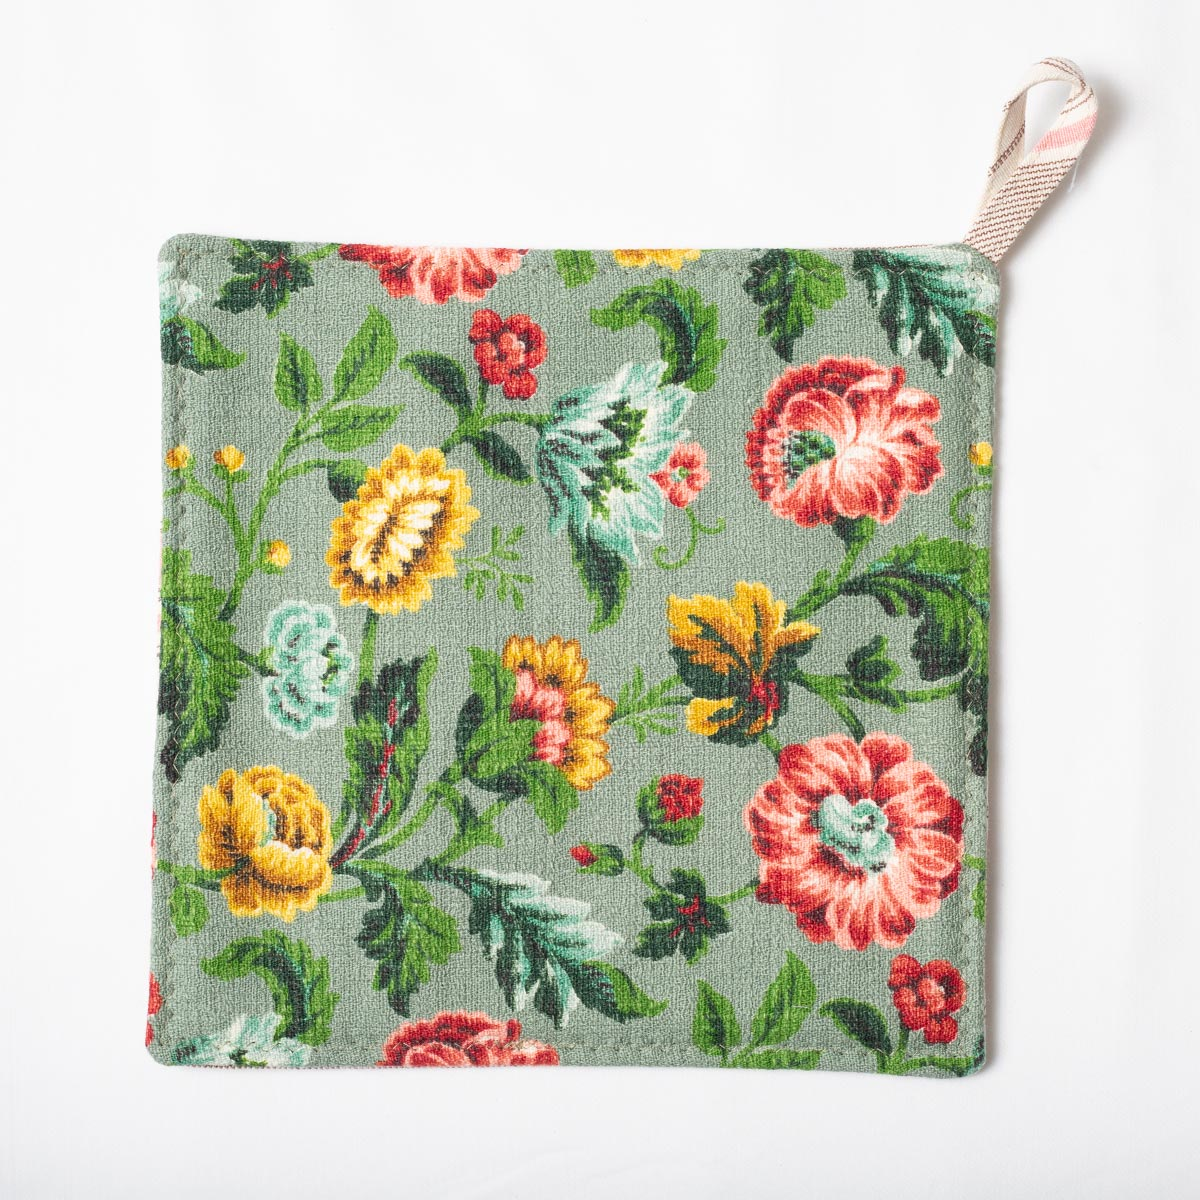 Floral Motif on Seafoam – Potholders